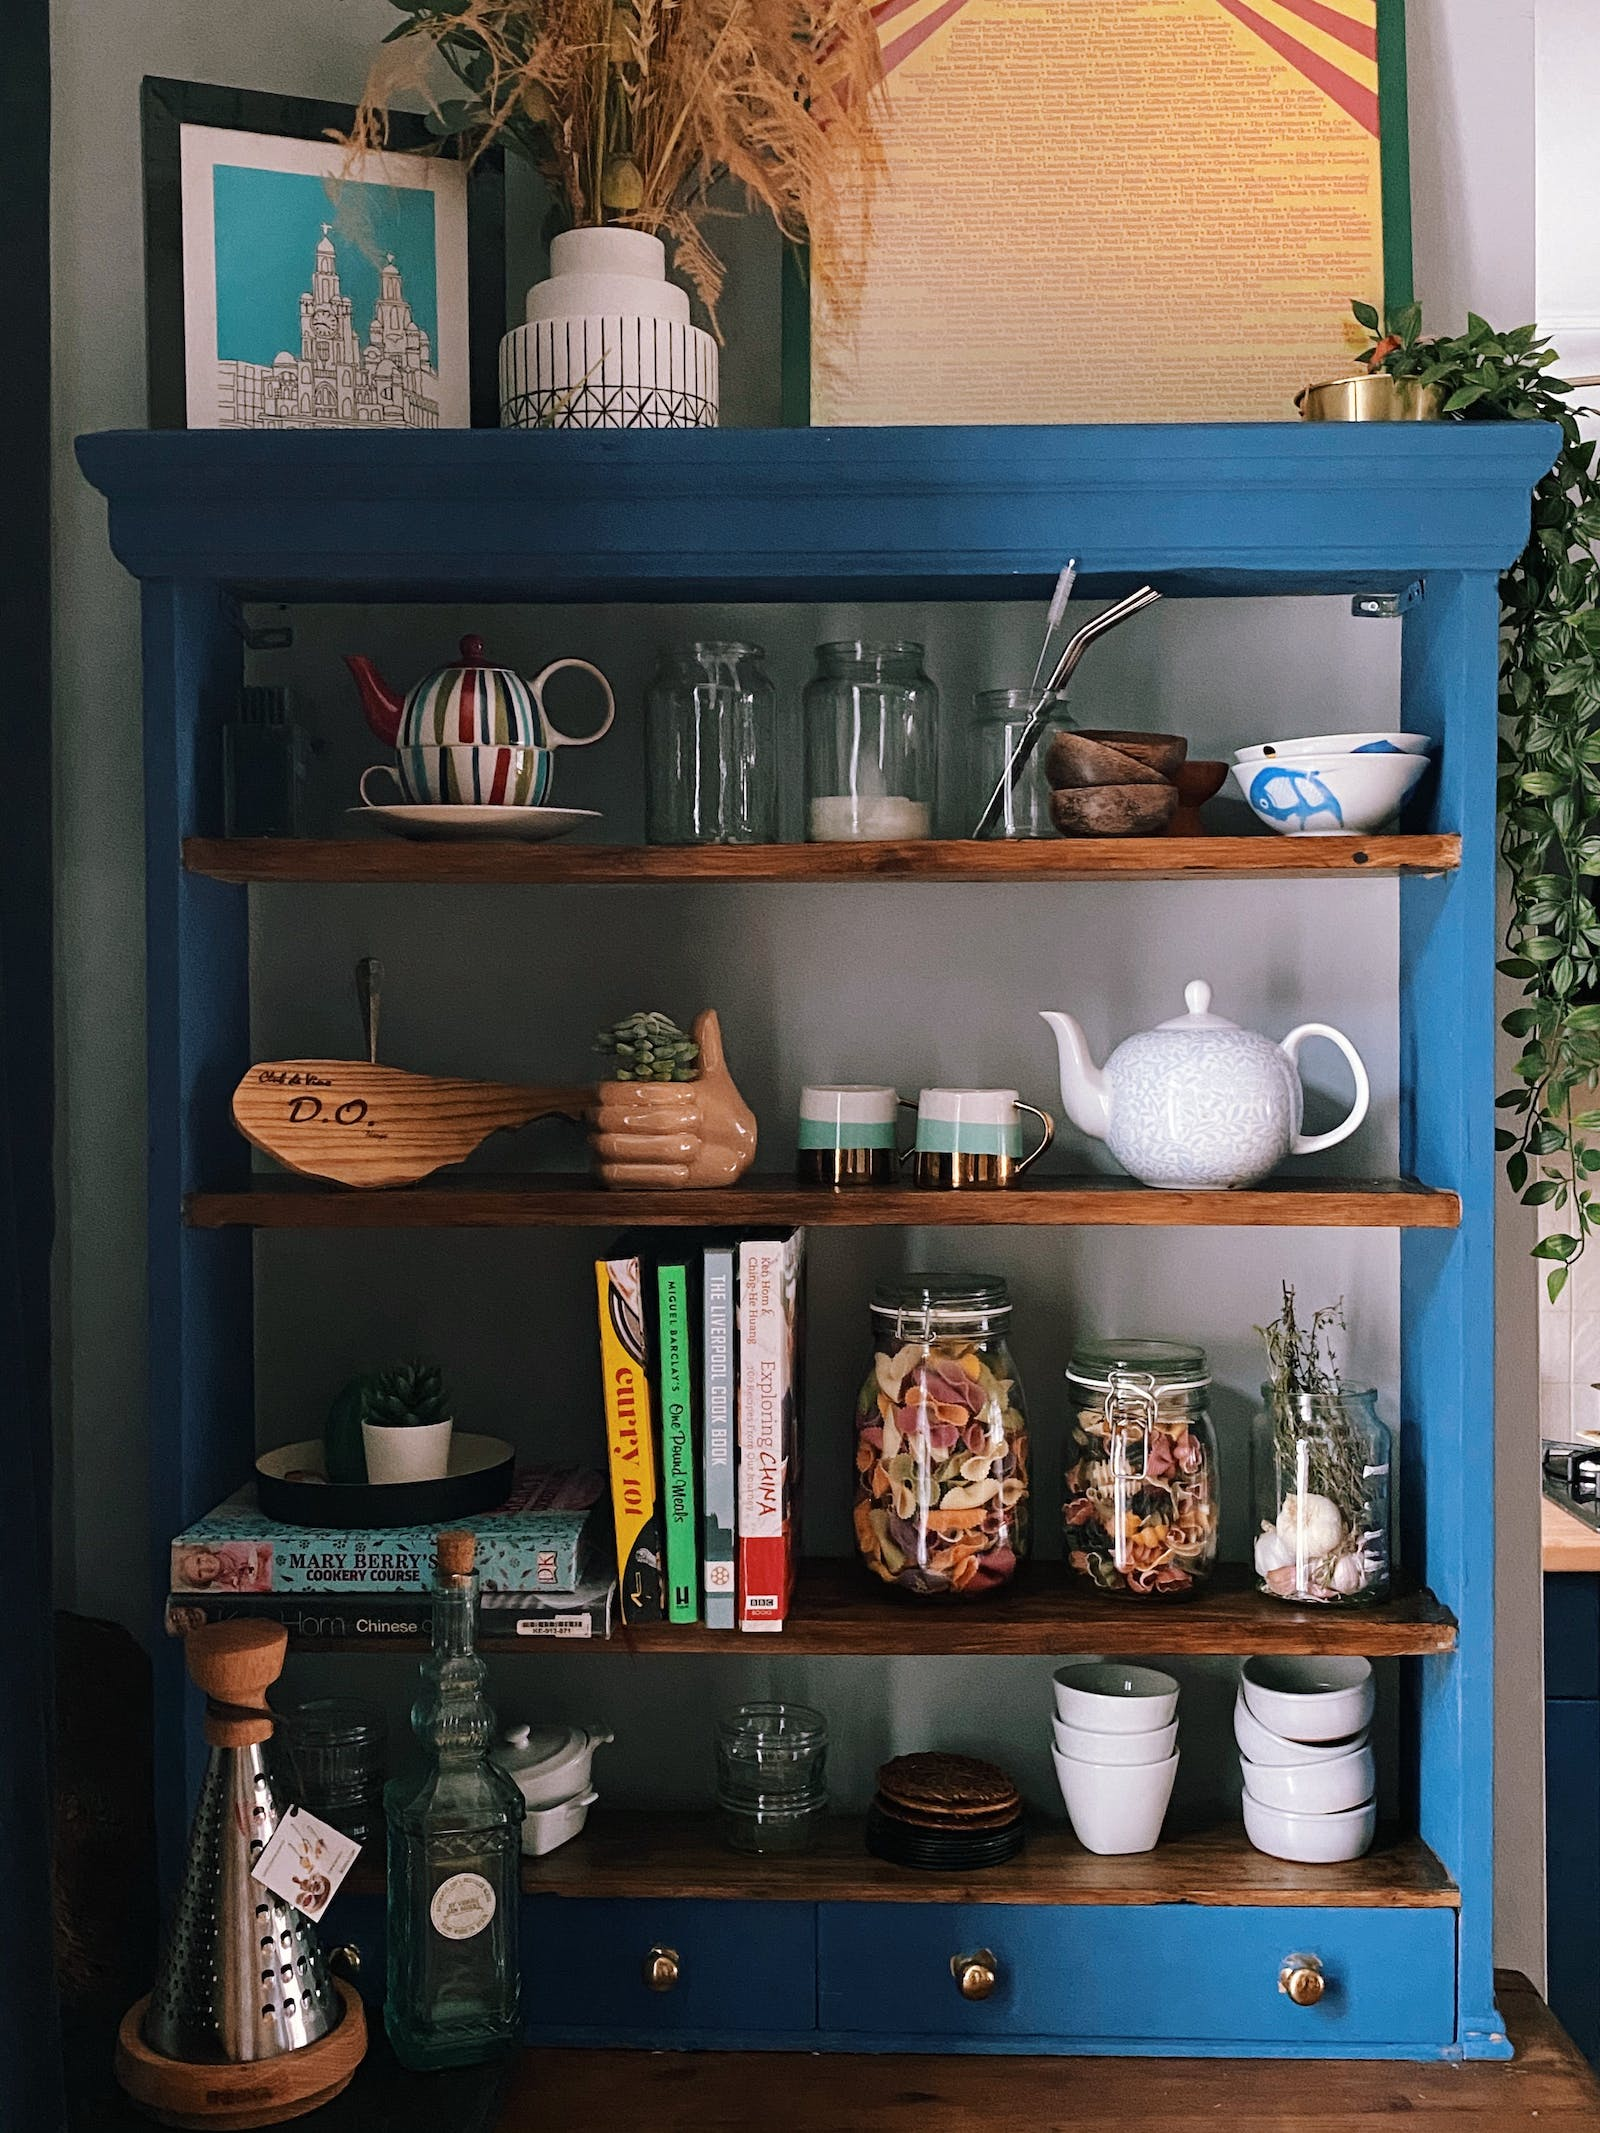 Vintage cupboard painted in blue with kitchen details